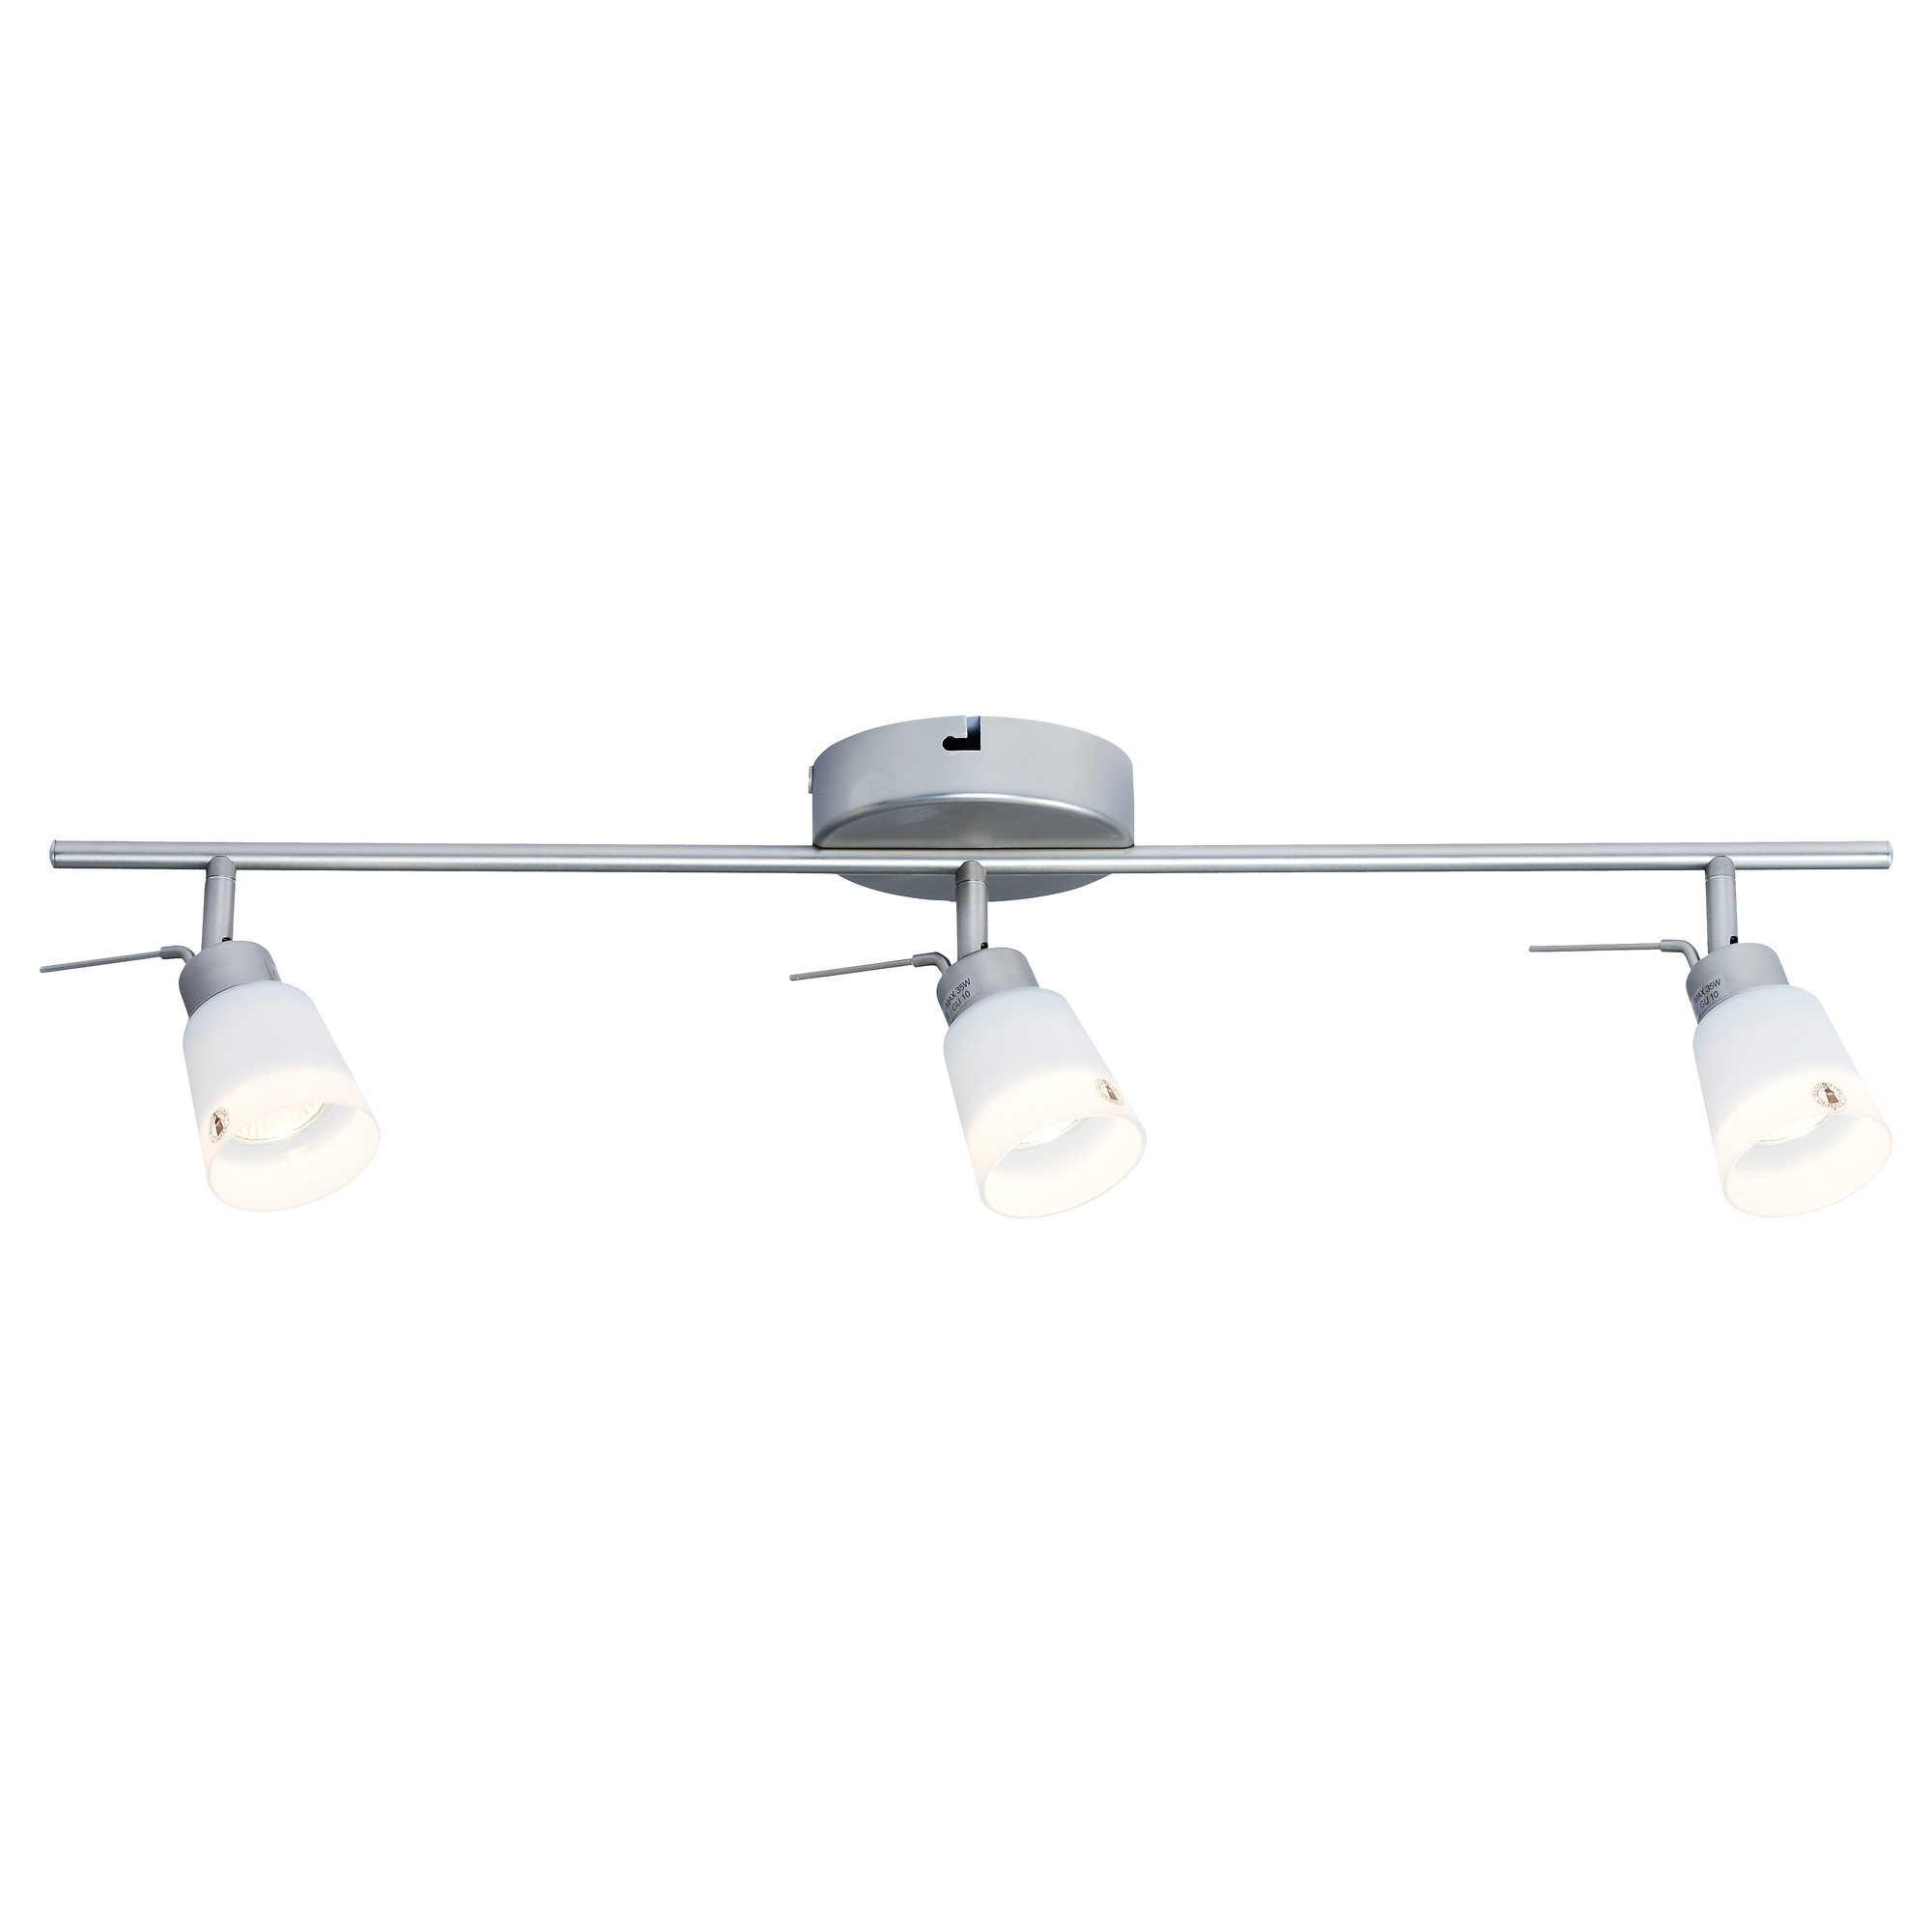 replacing track lighting. basisk ceiling track 3 spotlights ikea lighting replacement for kitchen replacing s